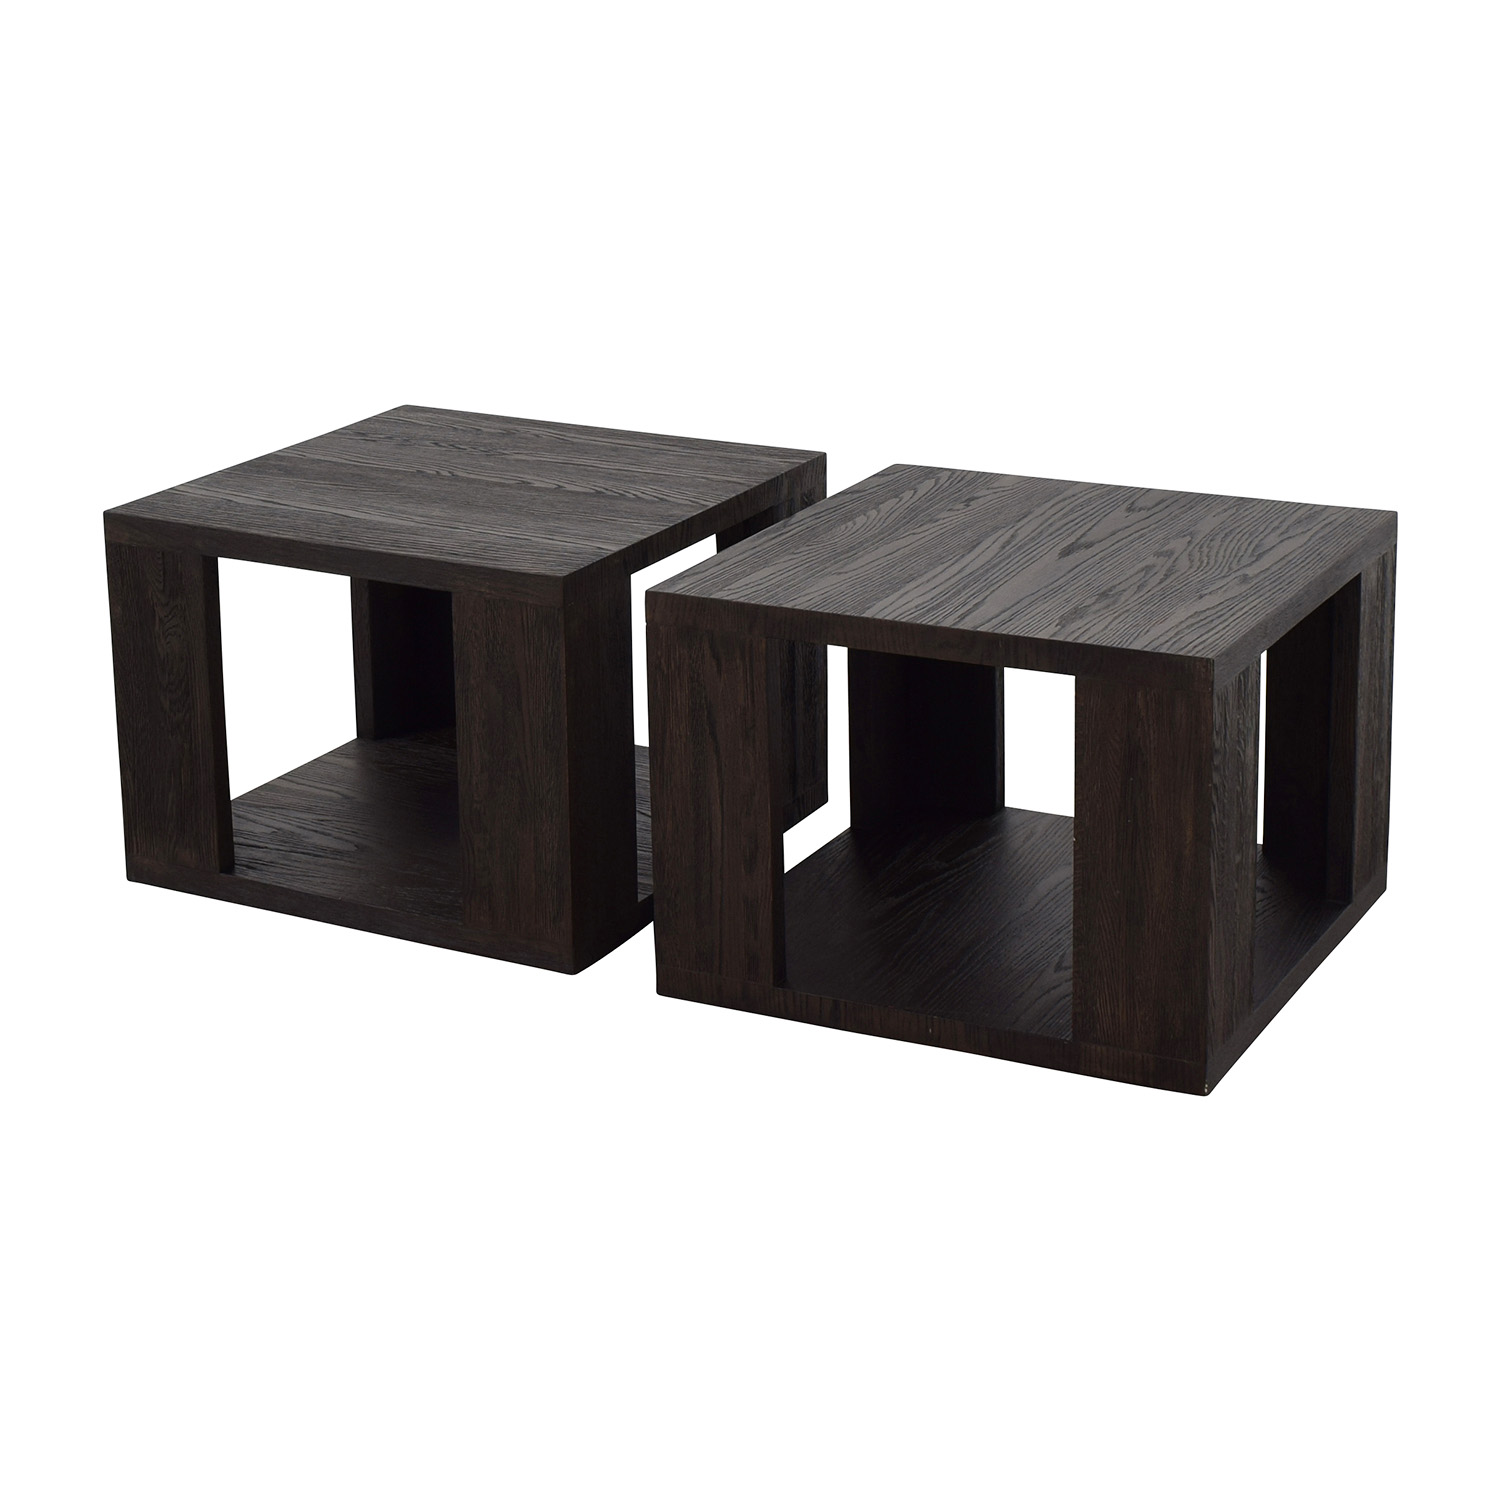 Restoration Hardware Restoration Hardware Hayes Square Side Table second hand